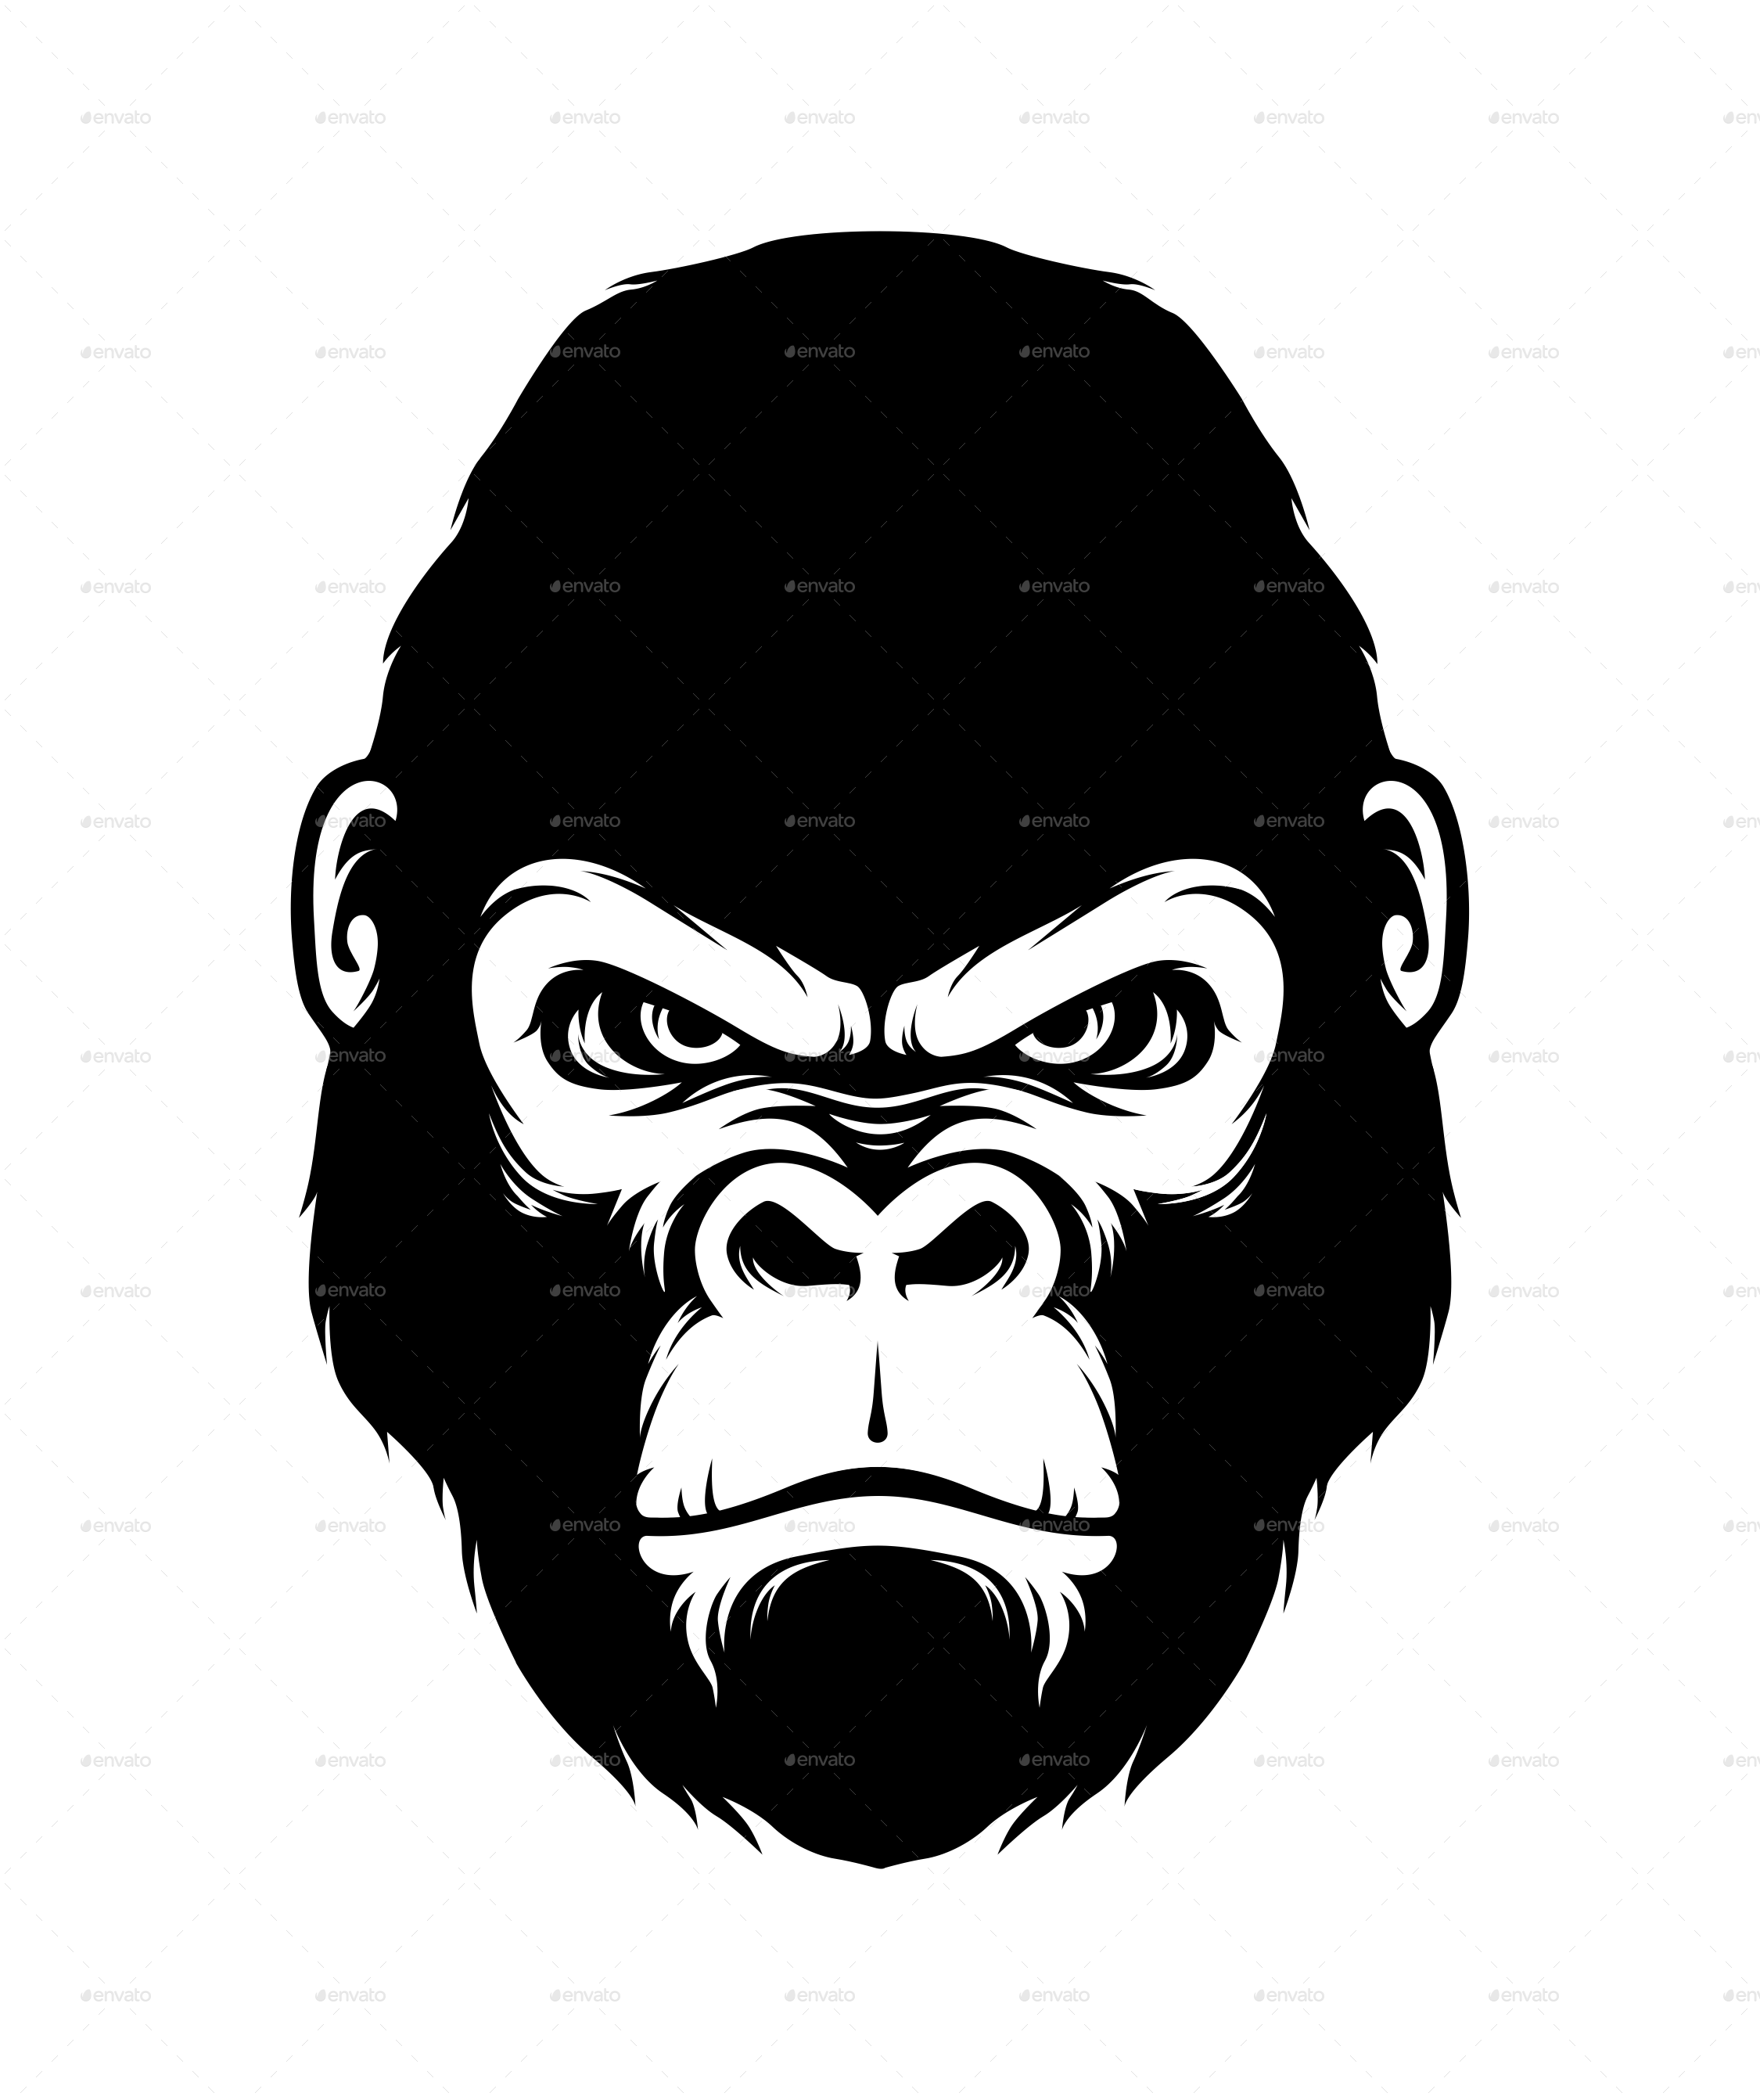 Gorilla head png. Silhouette style by fahroer